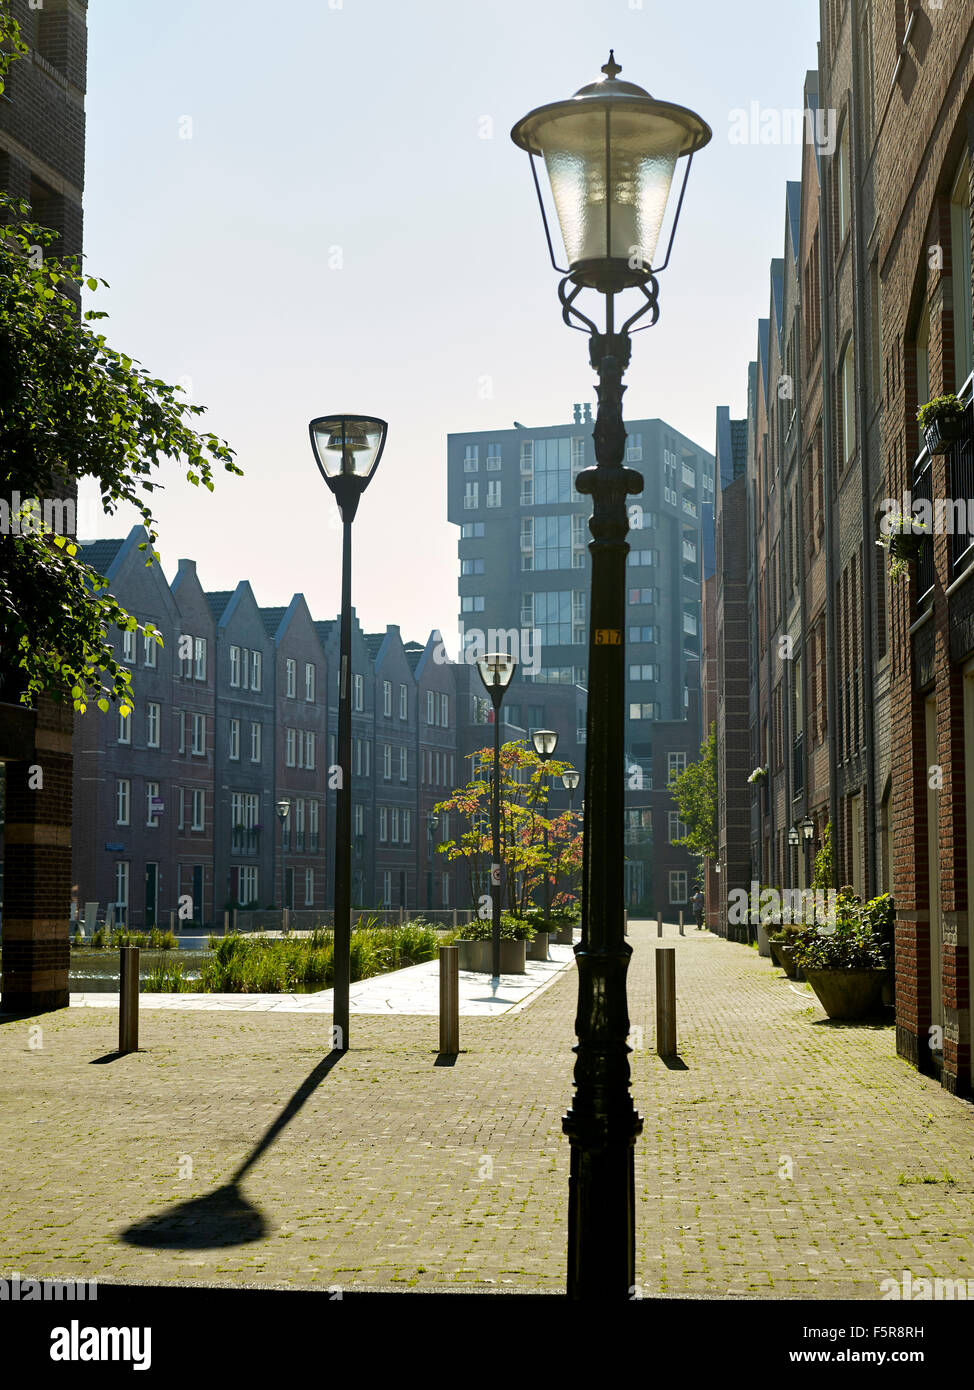 Public square surrounded with apartments and street lamps near the center of The Hague, Netherlands - Stock Image